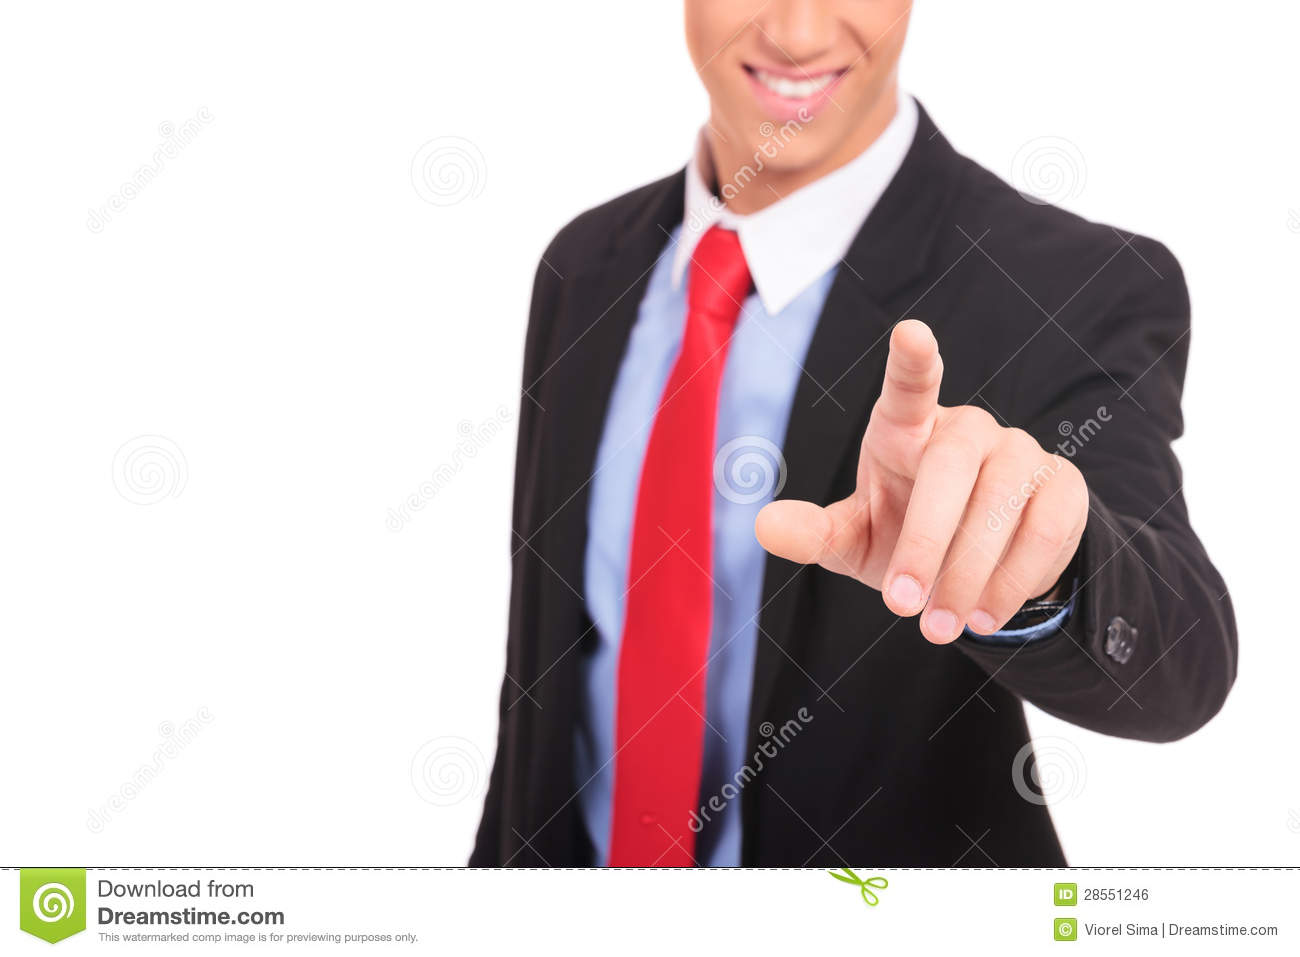 Business man in suit pushing a button